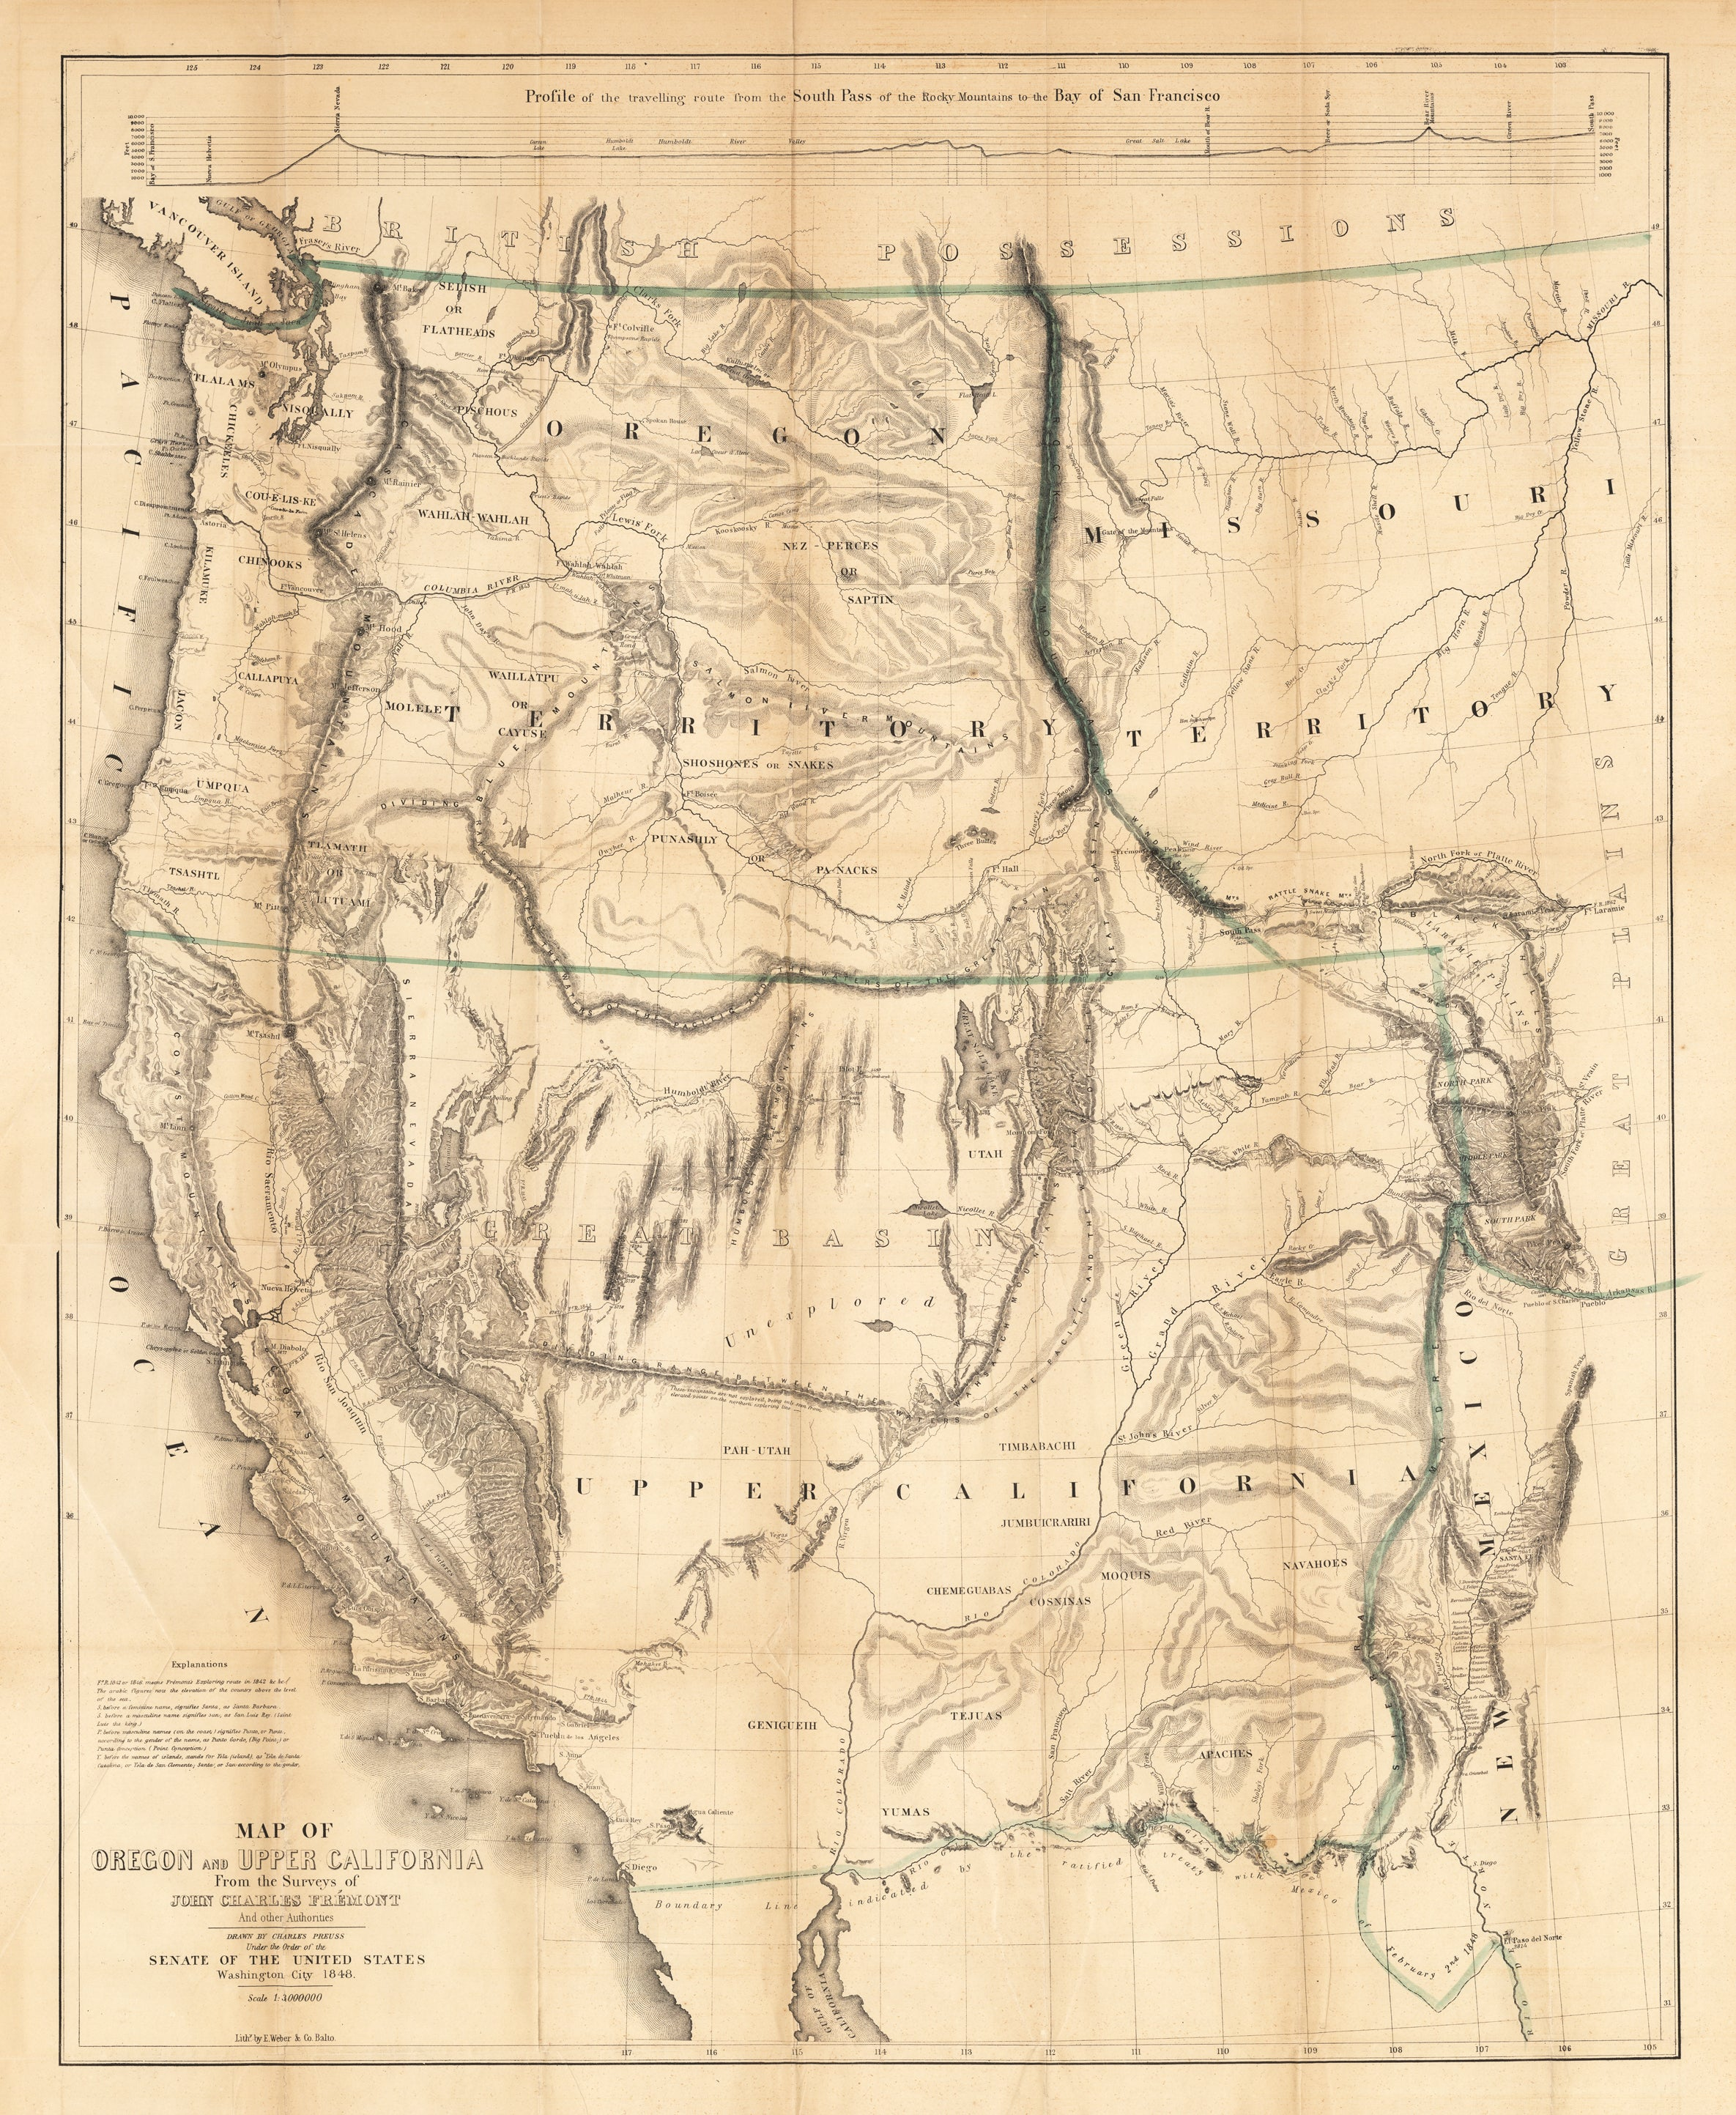 Map Of California To Oregon.1848 Map Of Oregon And Upper California From The Surveys Of John Charles Fremont